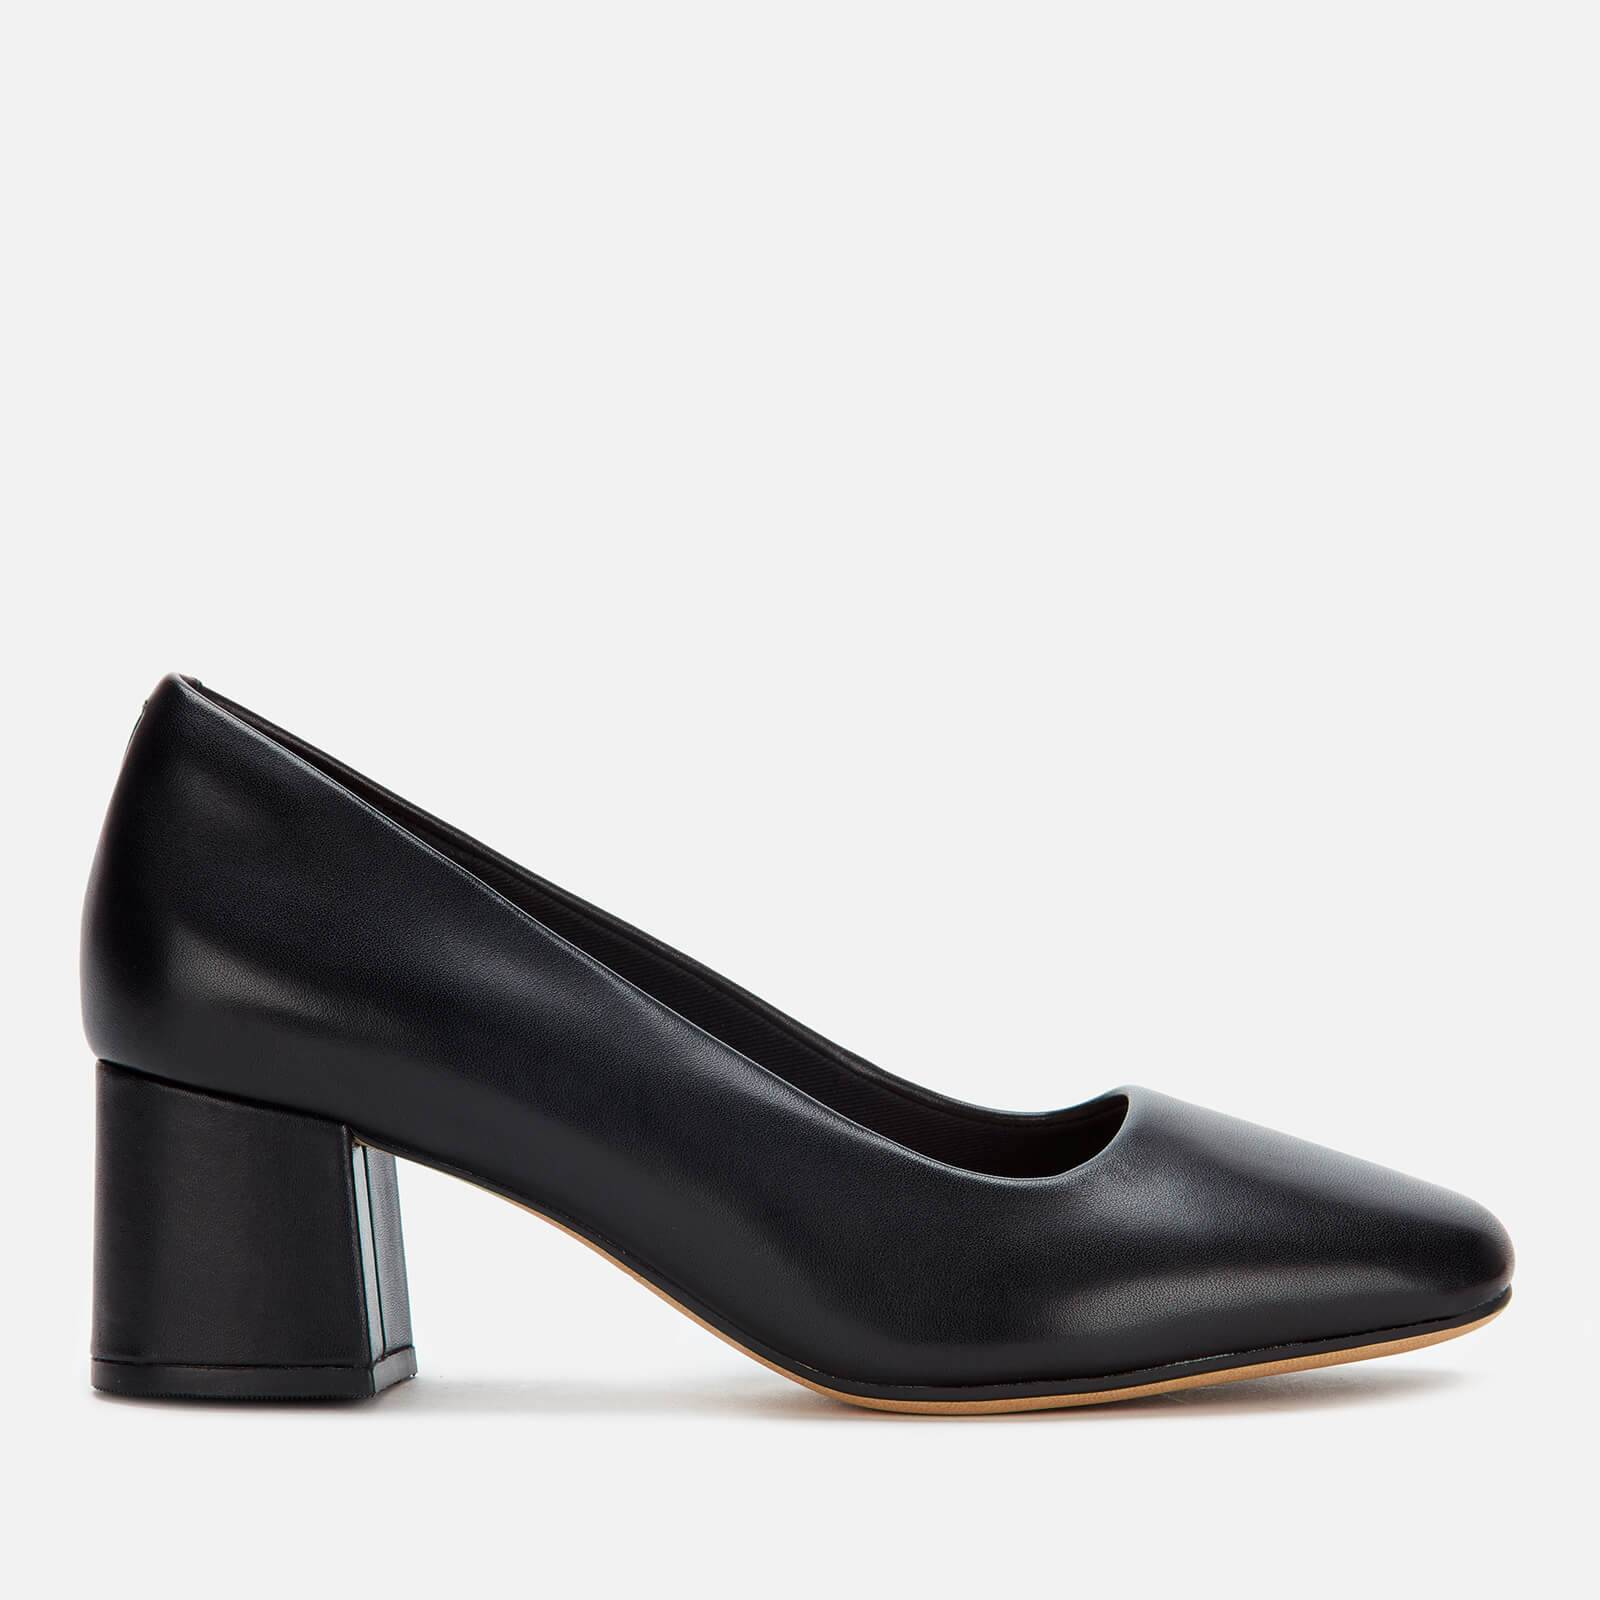 Clarks Women's Sheer Rose Leather Block Heeled Shoes - Black - UK 6